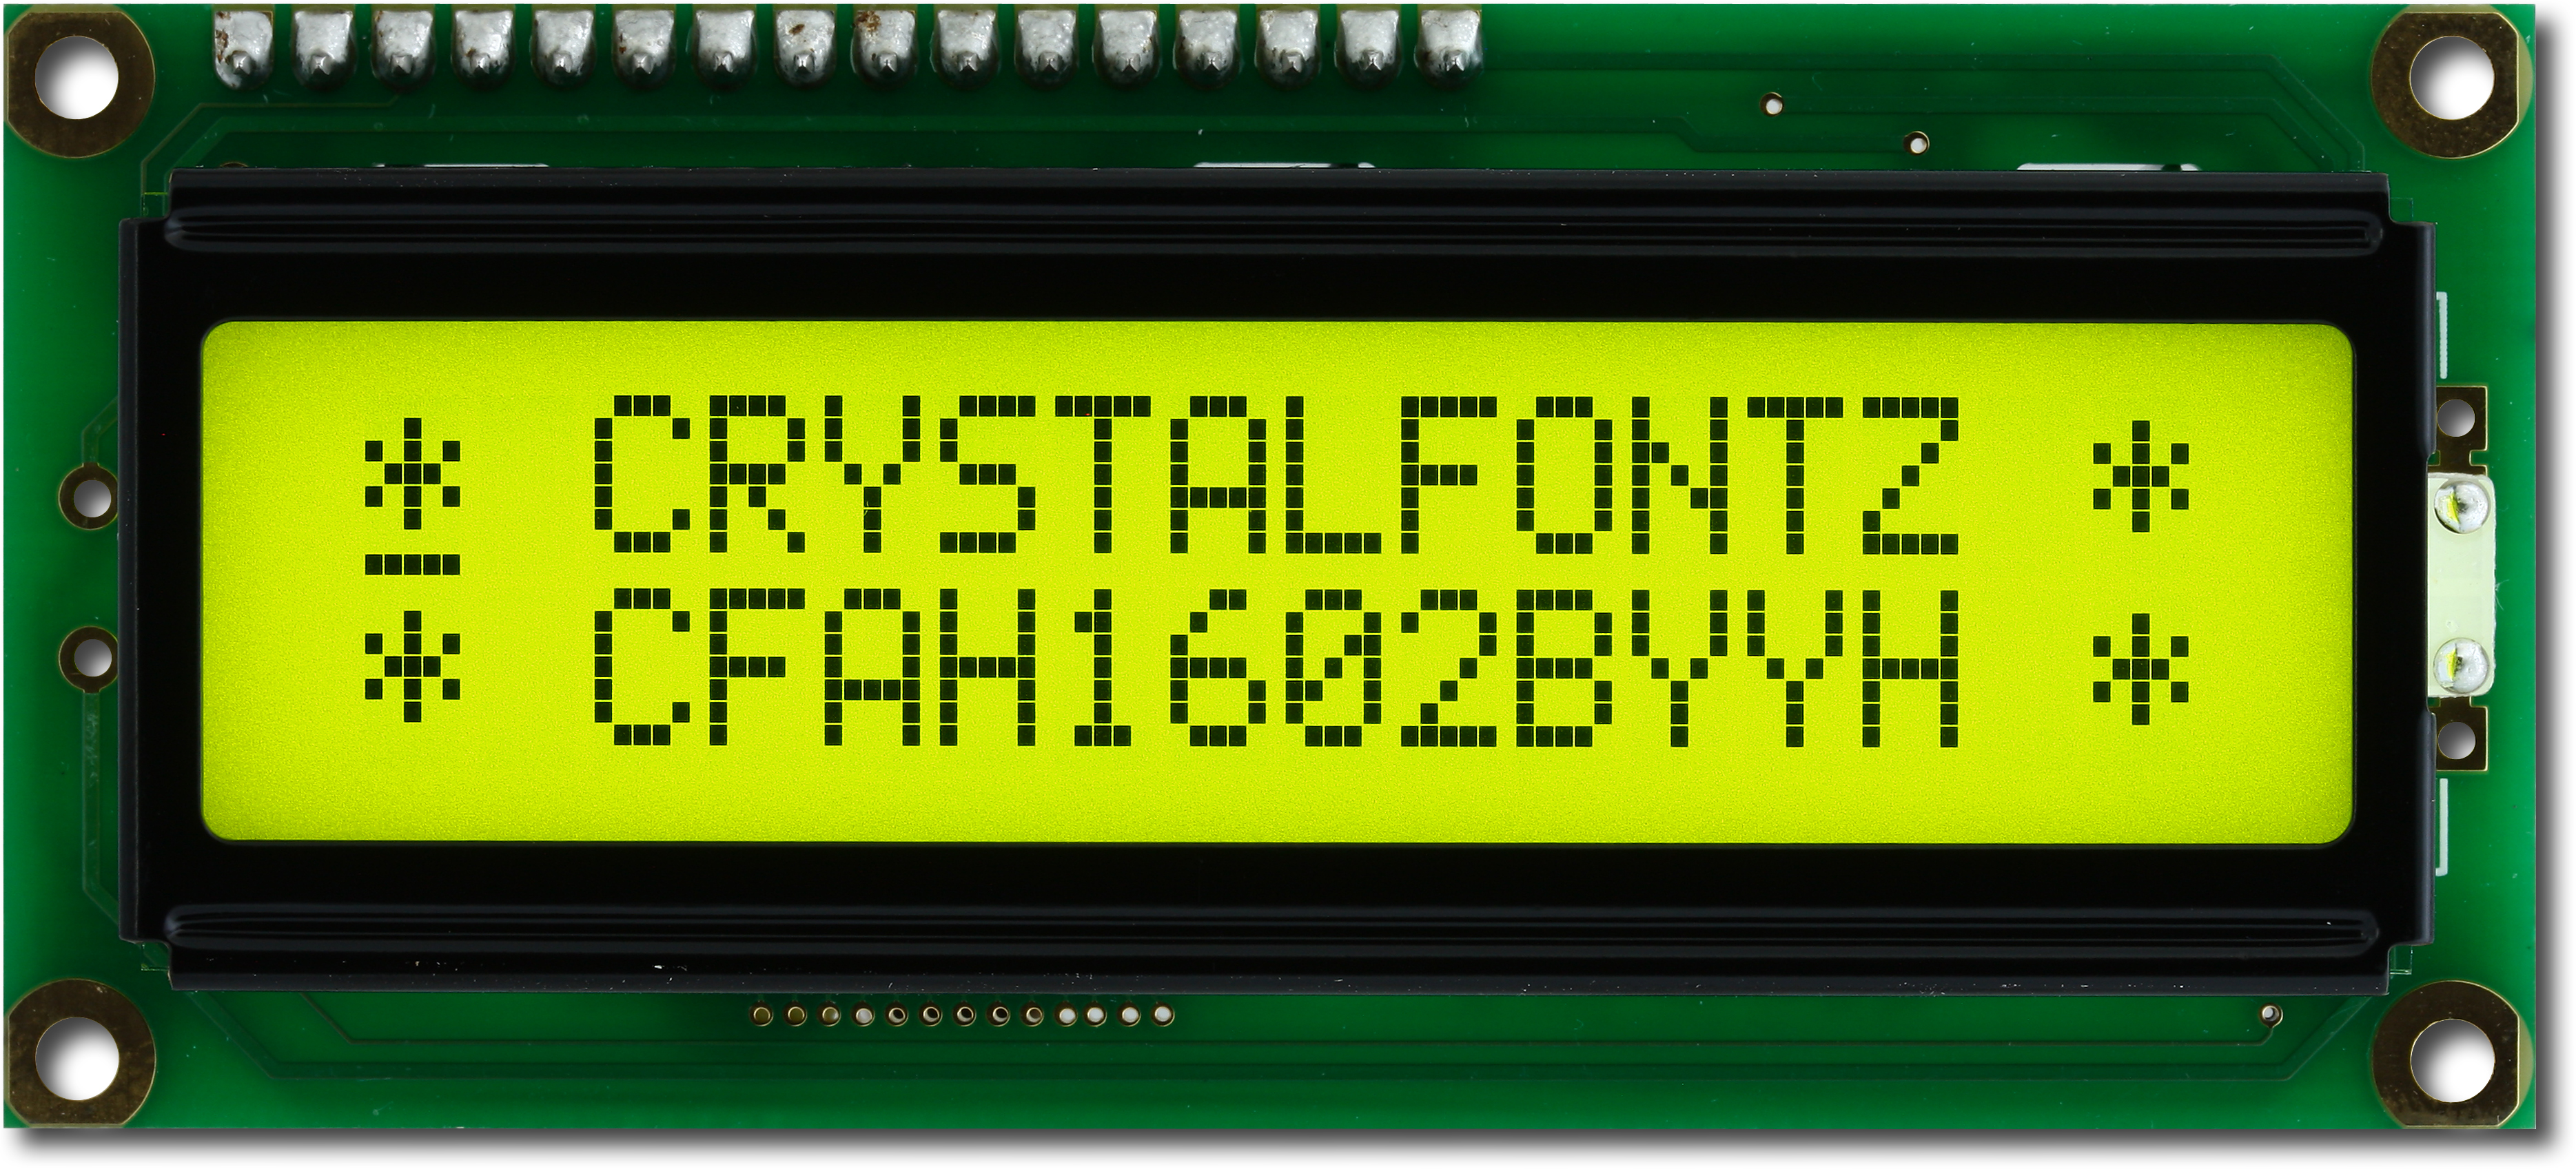 CFAH1602BYYH_large Datasheet For Lcd X Pdf on el foil, screen pinout, pin configuration, cursor location, display module, shield assembly, arduino nano, wiring adapter, display case stl, blue display black text, connection lpc1768,